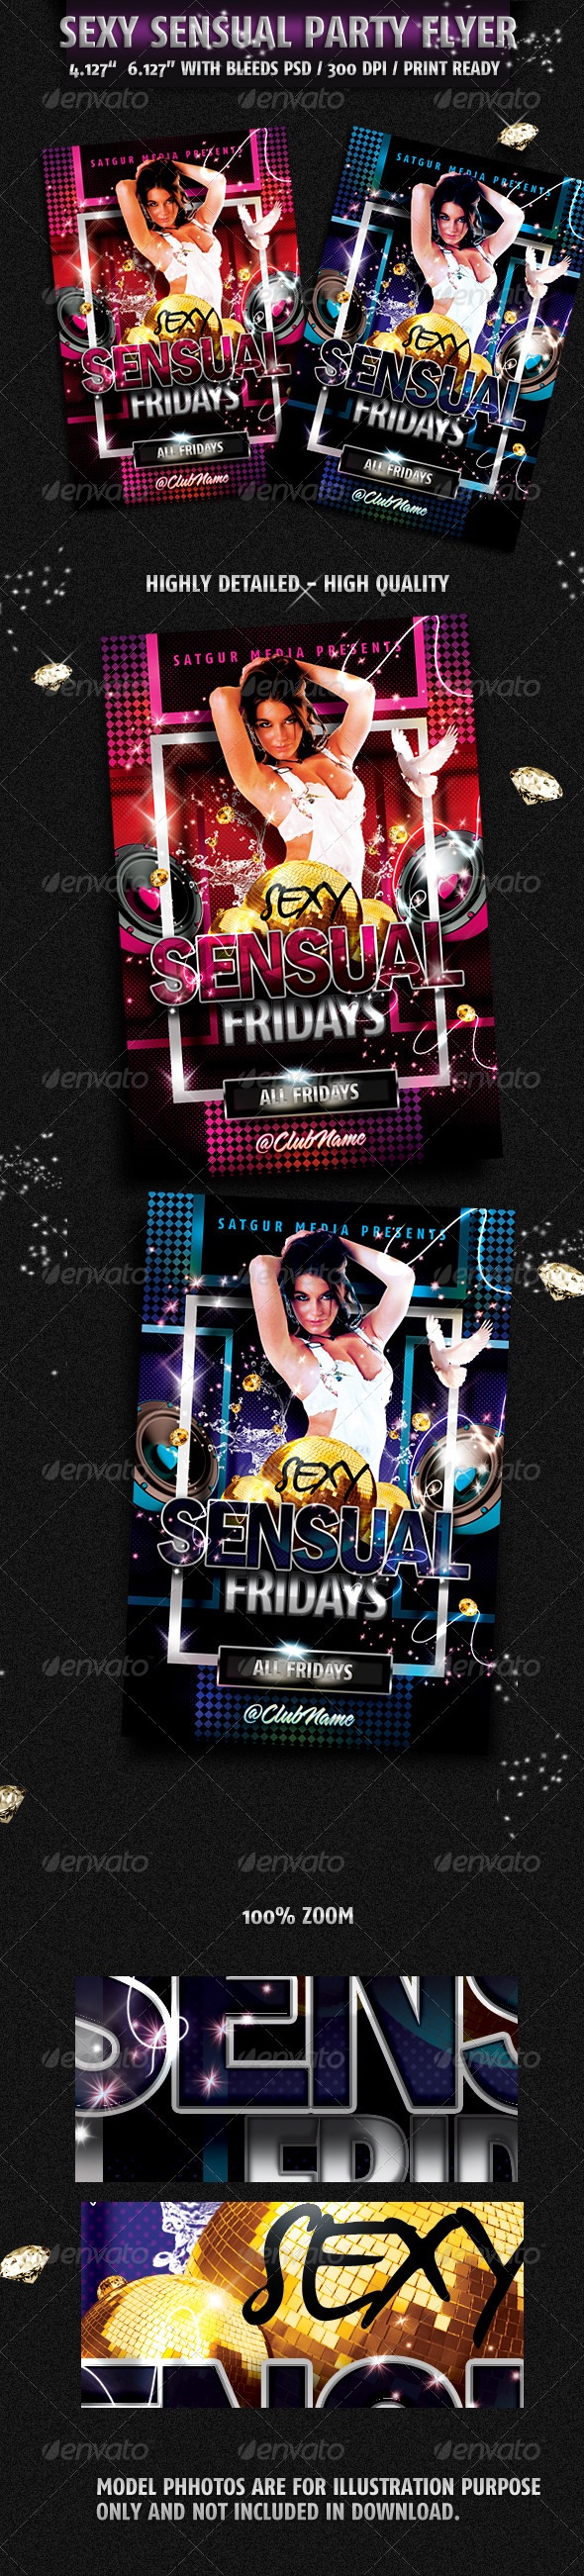 Sensual Music Dance DJ Night Party Flyer  - Flyers Print Templates